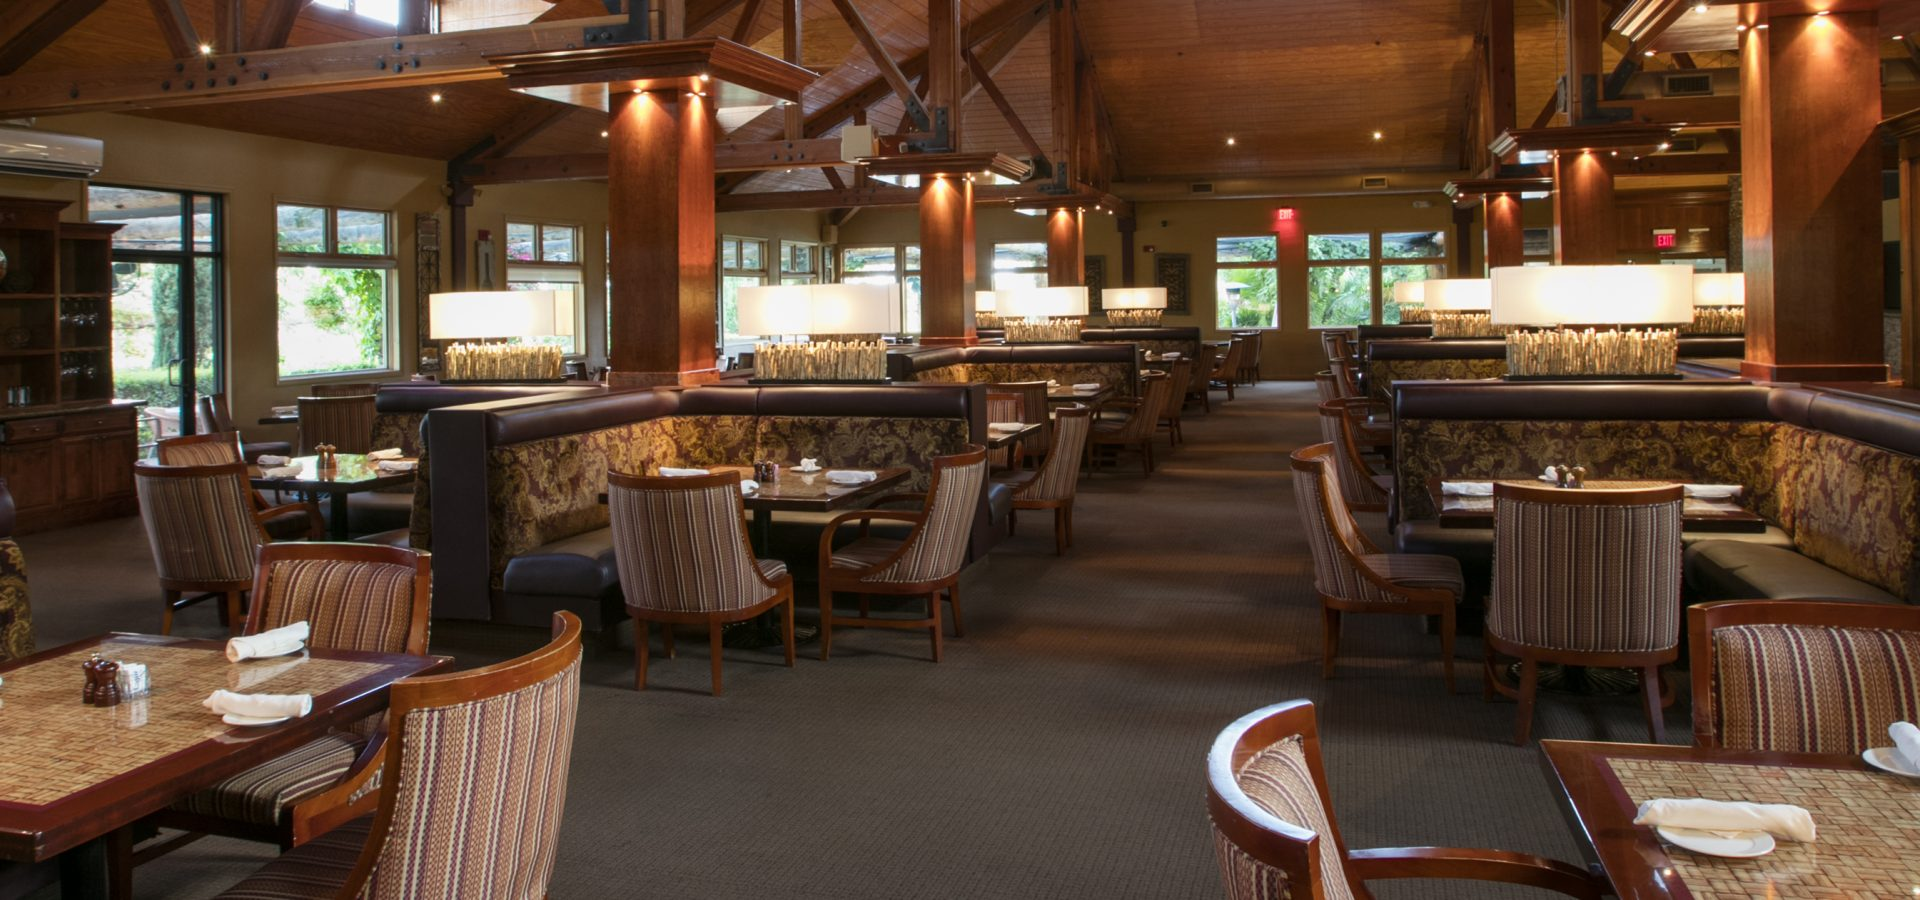 The Vineyard Rose Restaurant at South Coast Winery Resort